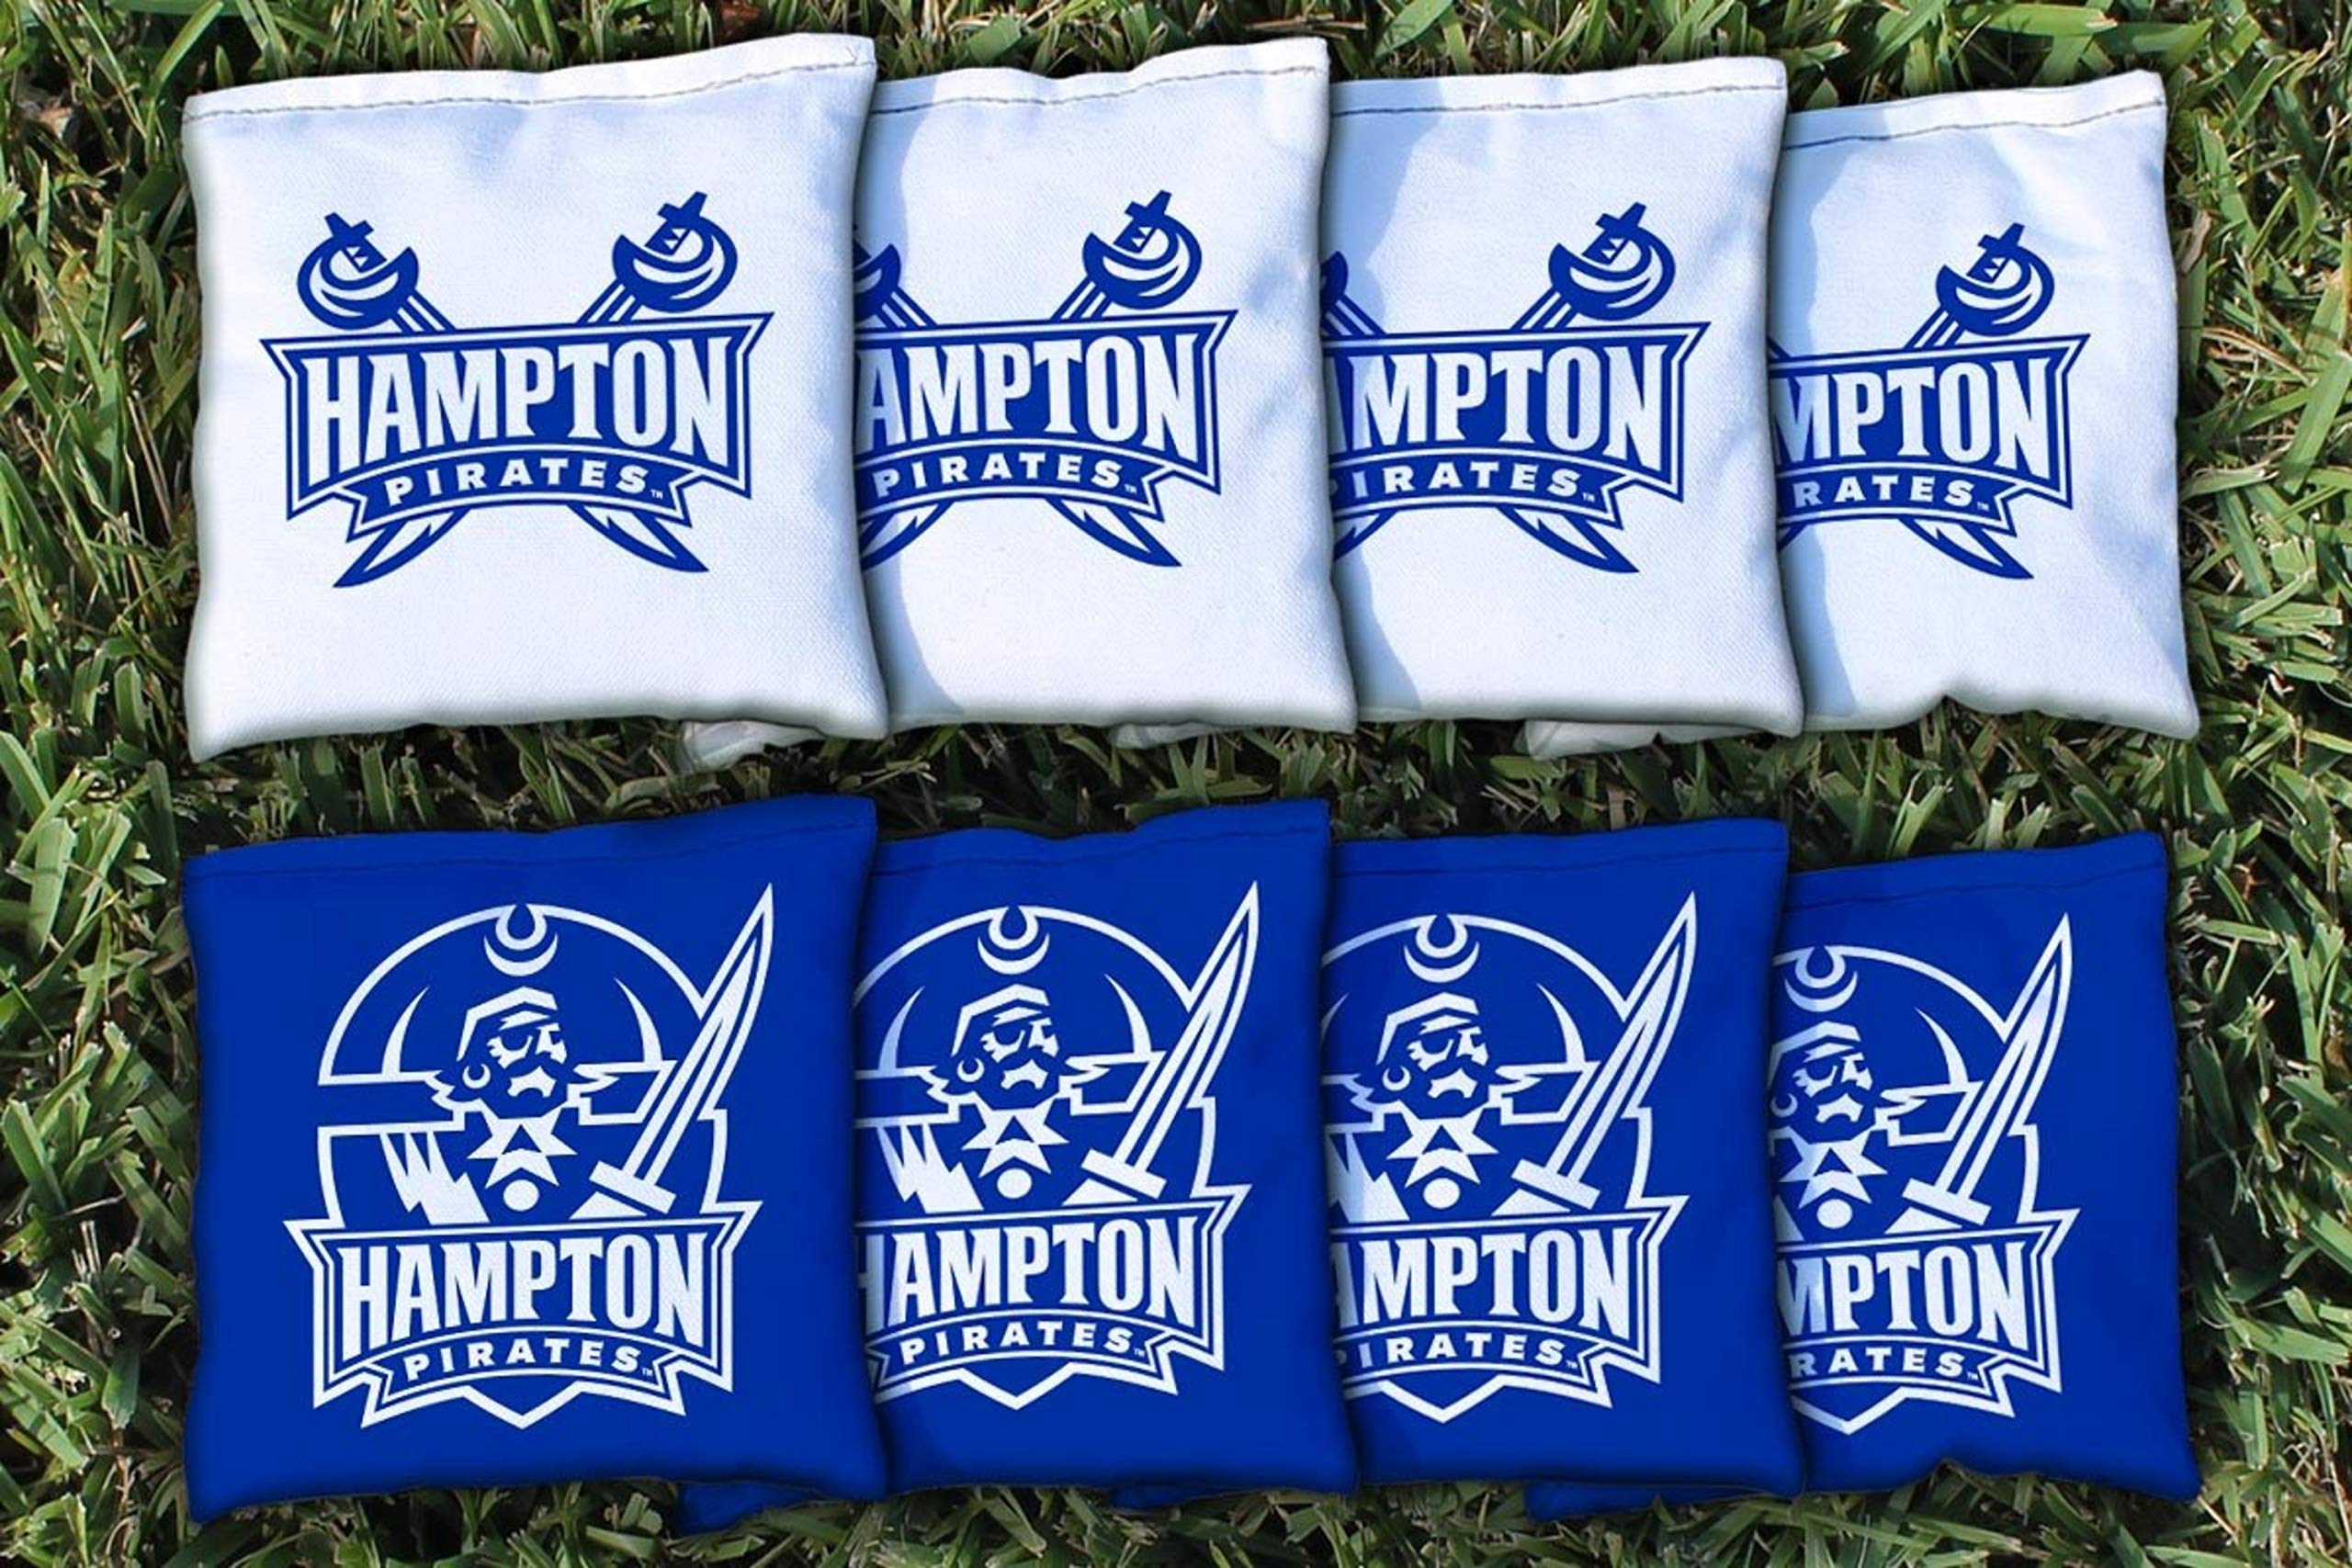 Victory Tailgate NCAA Collegiate Regulation Cornhole Game Bag Set (8 Bags Included, Corn-Filled) - Hampton University Pirates by Victory Tailgate